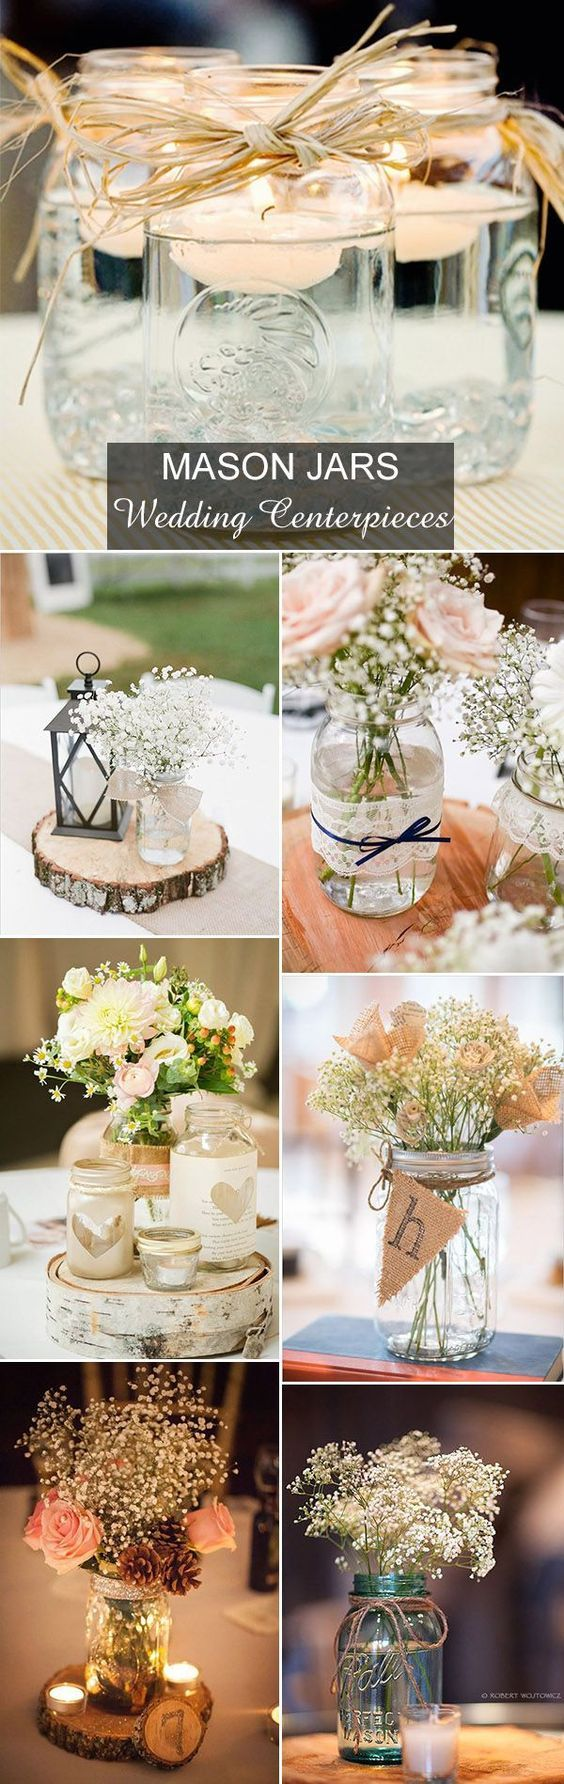 The ultimate wedding table centerpiece: DIY country rustic mason jars with flowers.